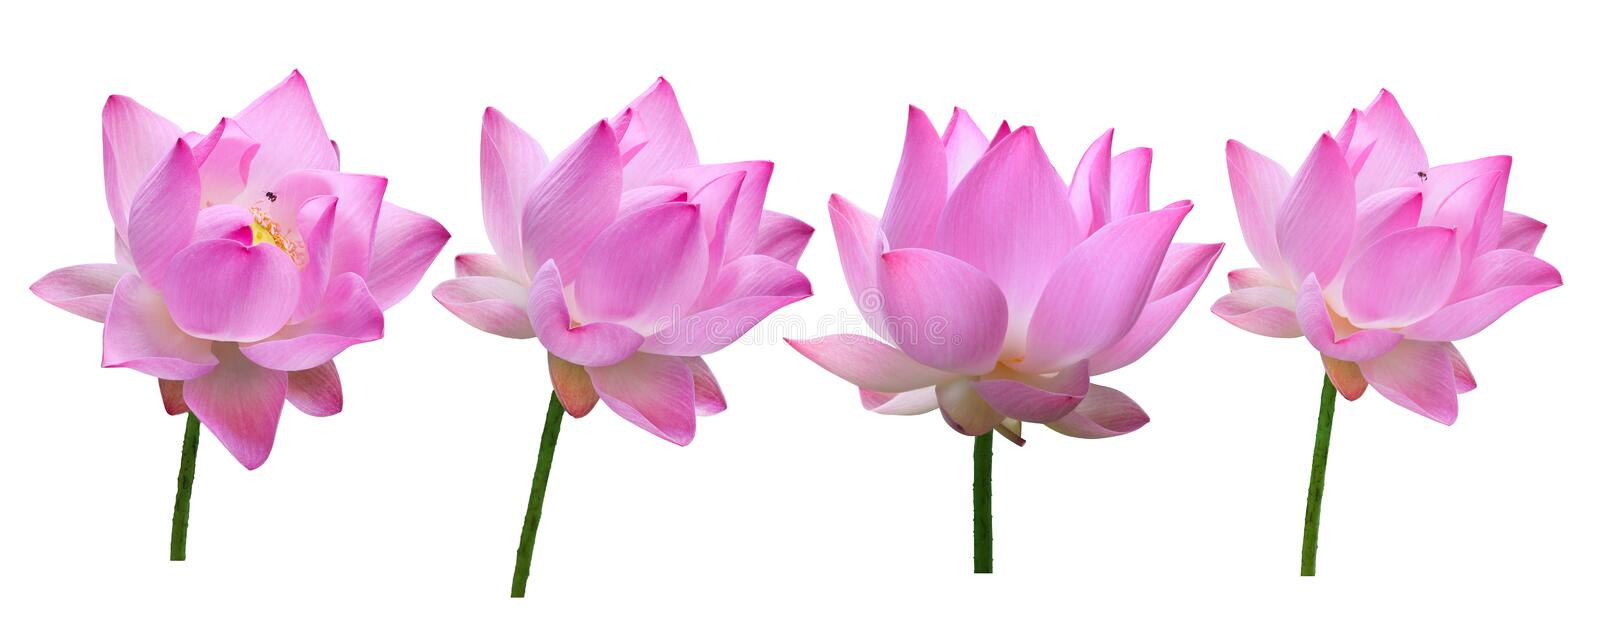 Close Up Pink Lotus Flower High Resolution Isolated On White